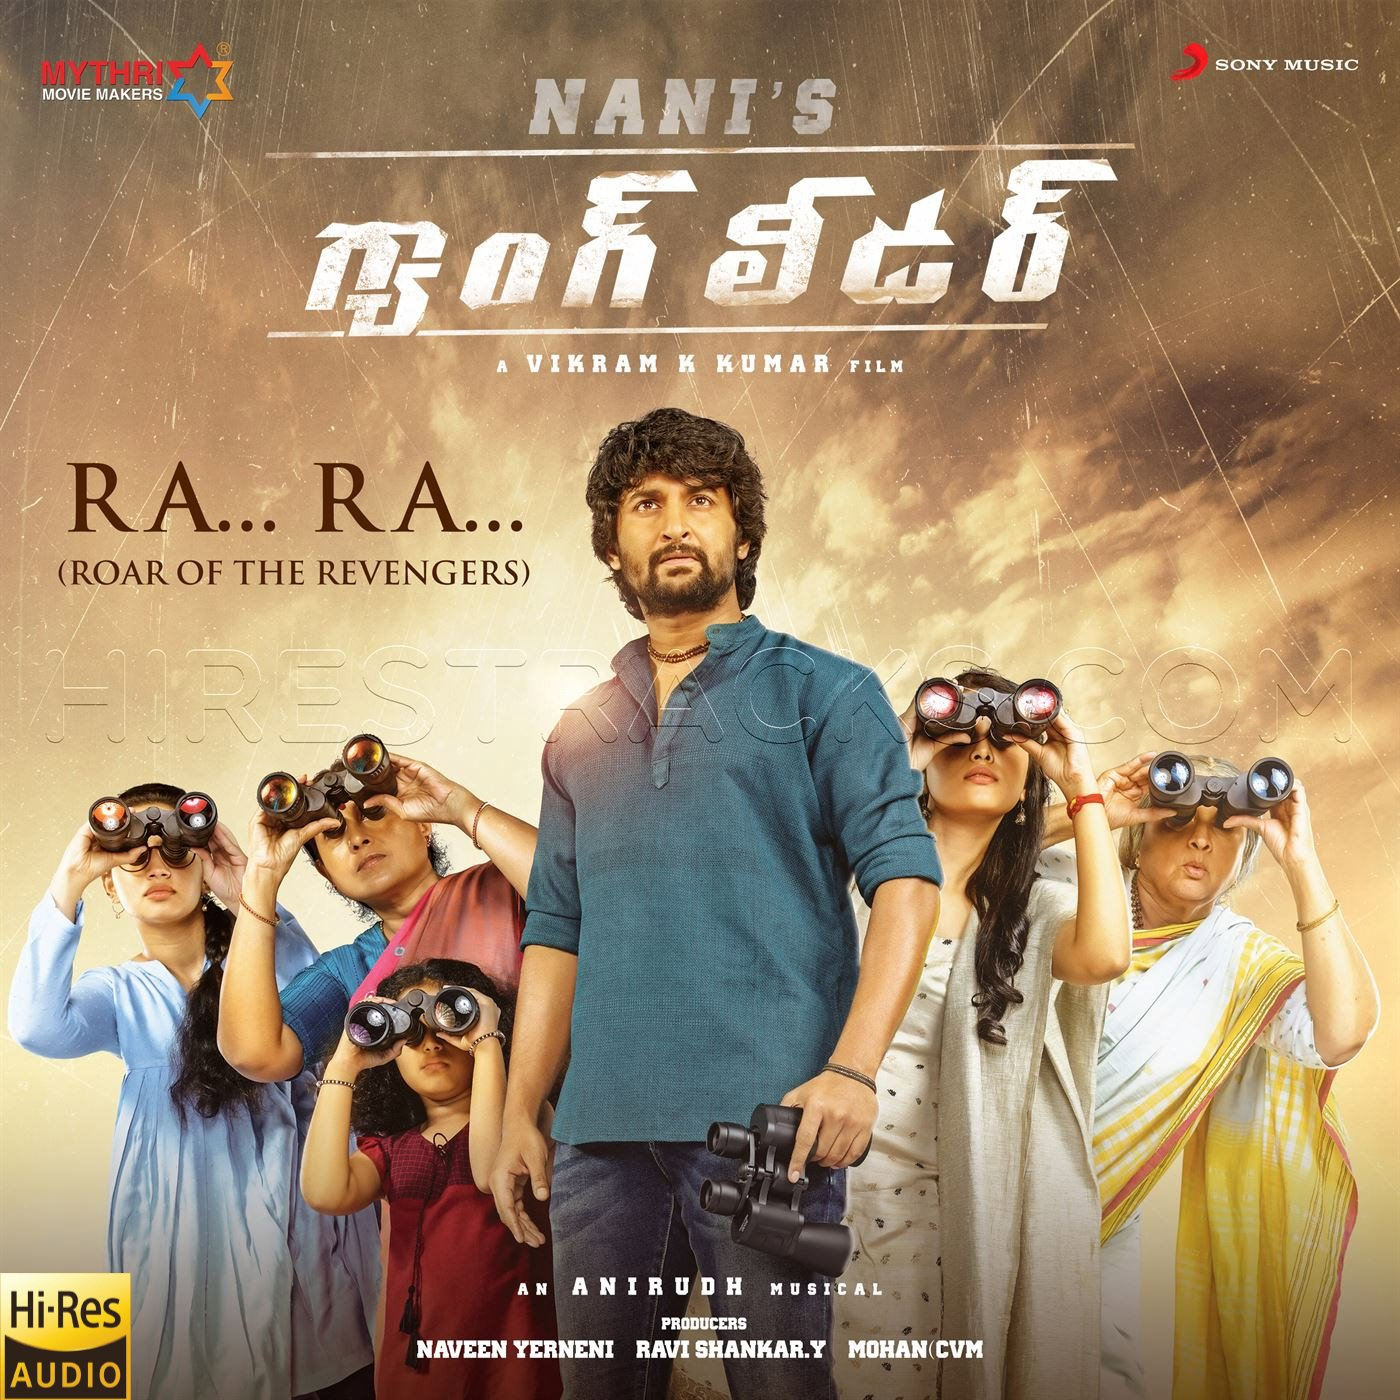 Ra Ra (Roar of the Revengers) (From Gang Leader) (2019) (Anirudh Ravichander) [24 BIT – 96 KHZ] [Digital-DL-FLAC]